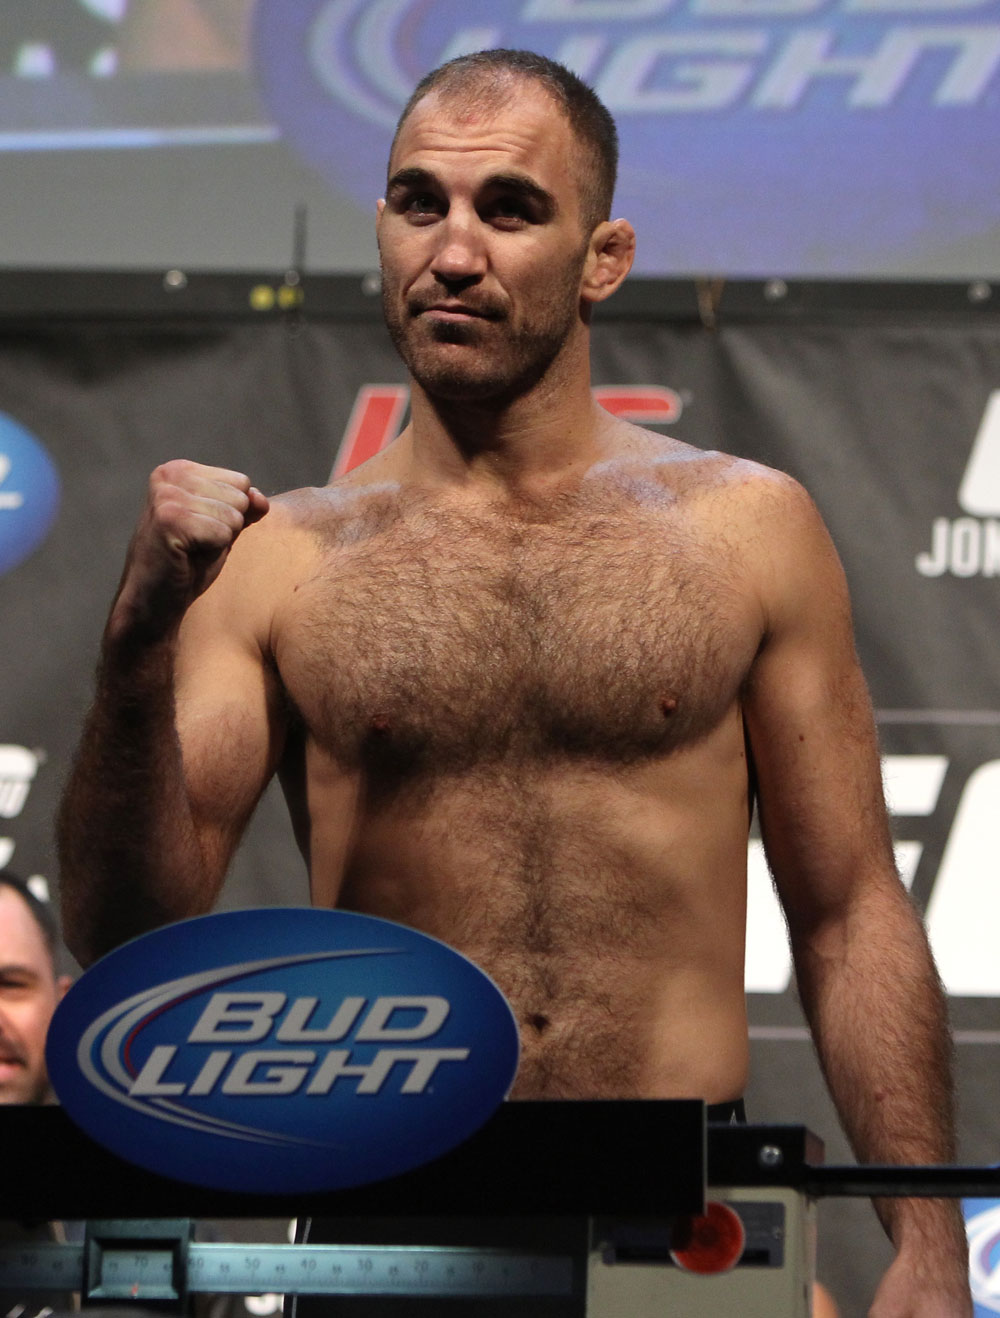 TORONTO, ON - DECEMBER 09:  Brian Ebersole weighs in during the UFC 140 Official Weigh-in at the Air Canada Centre on December 9, 2011 in Toronto, Canada.  (Photo by Josh Hedges/Zuffa LLC/Zuffa LLC via Getty Images)